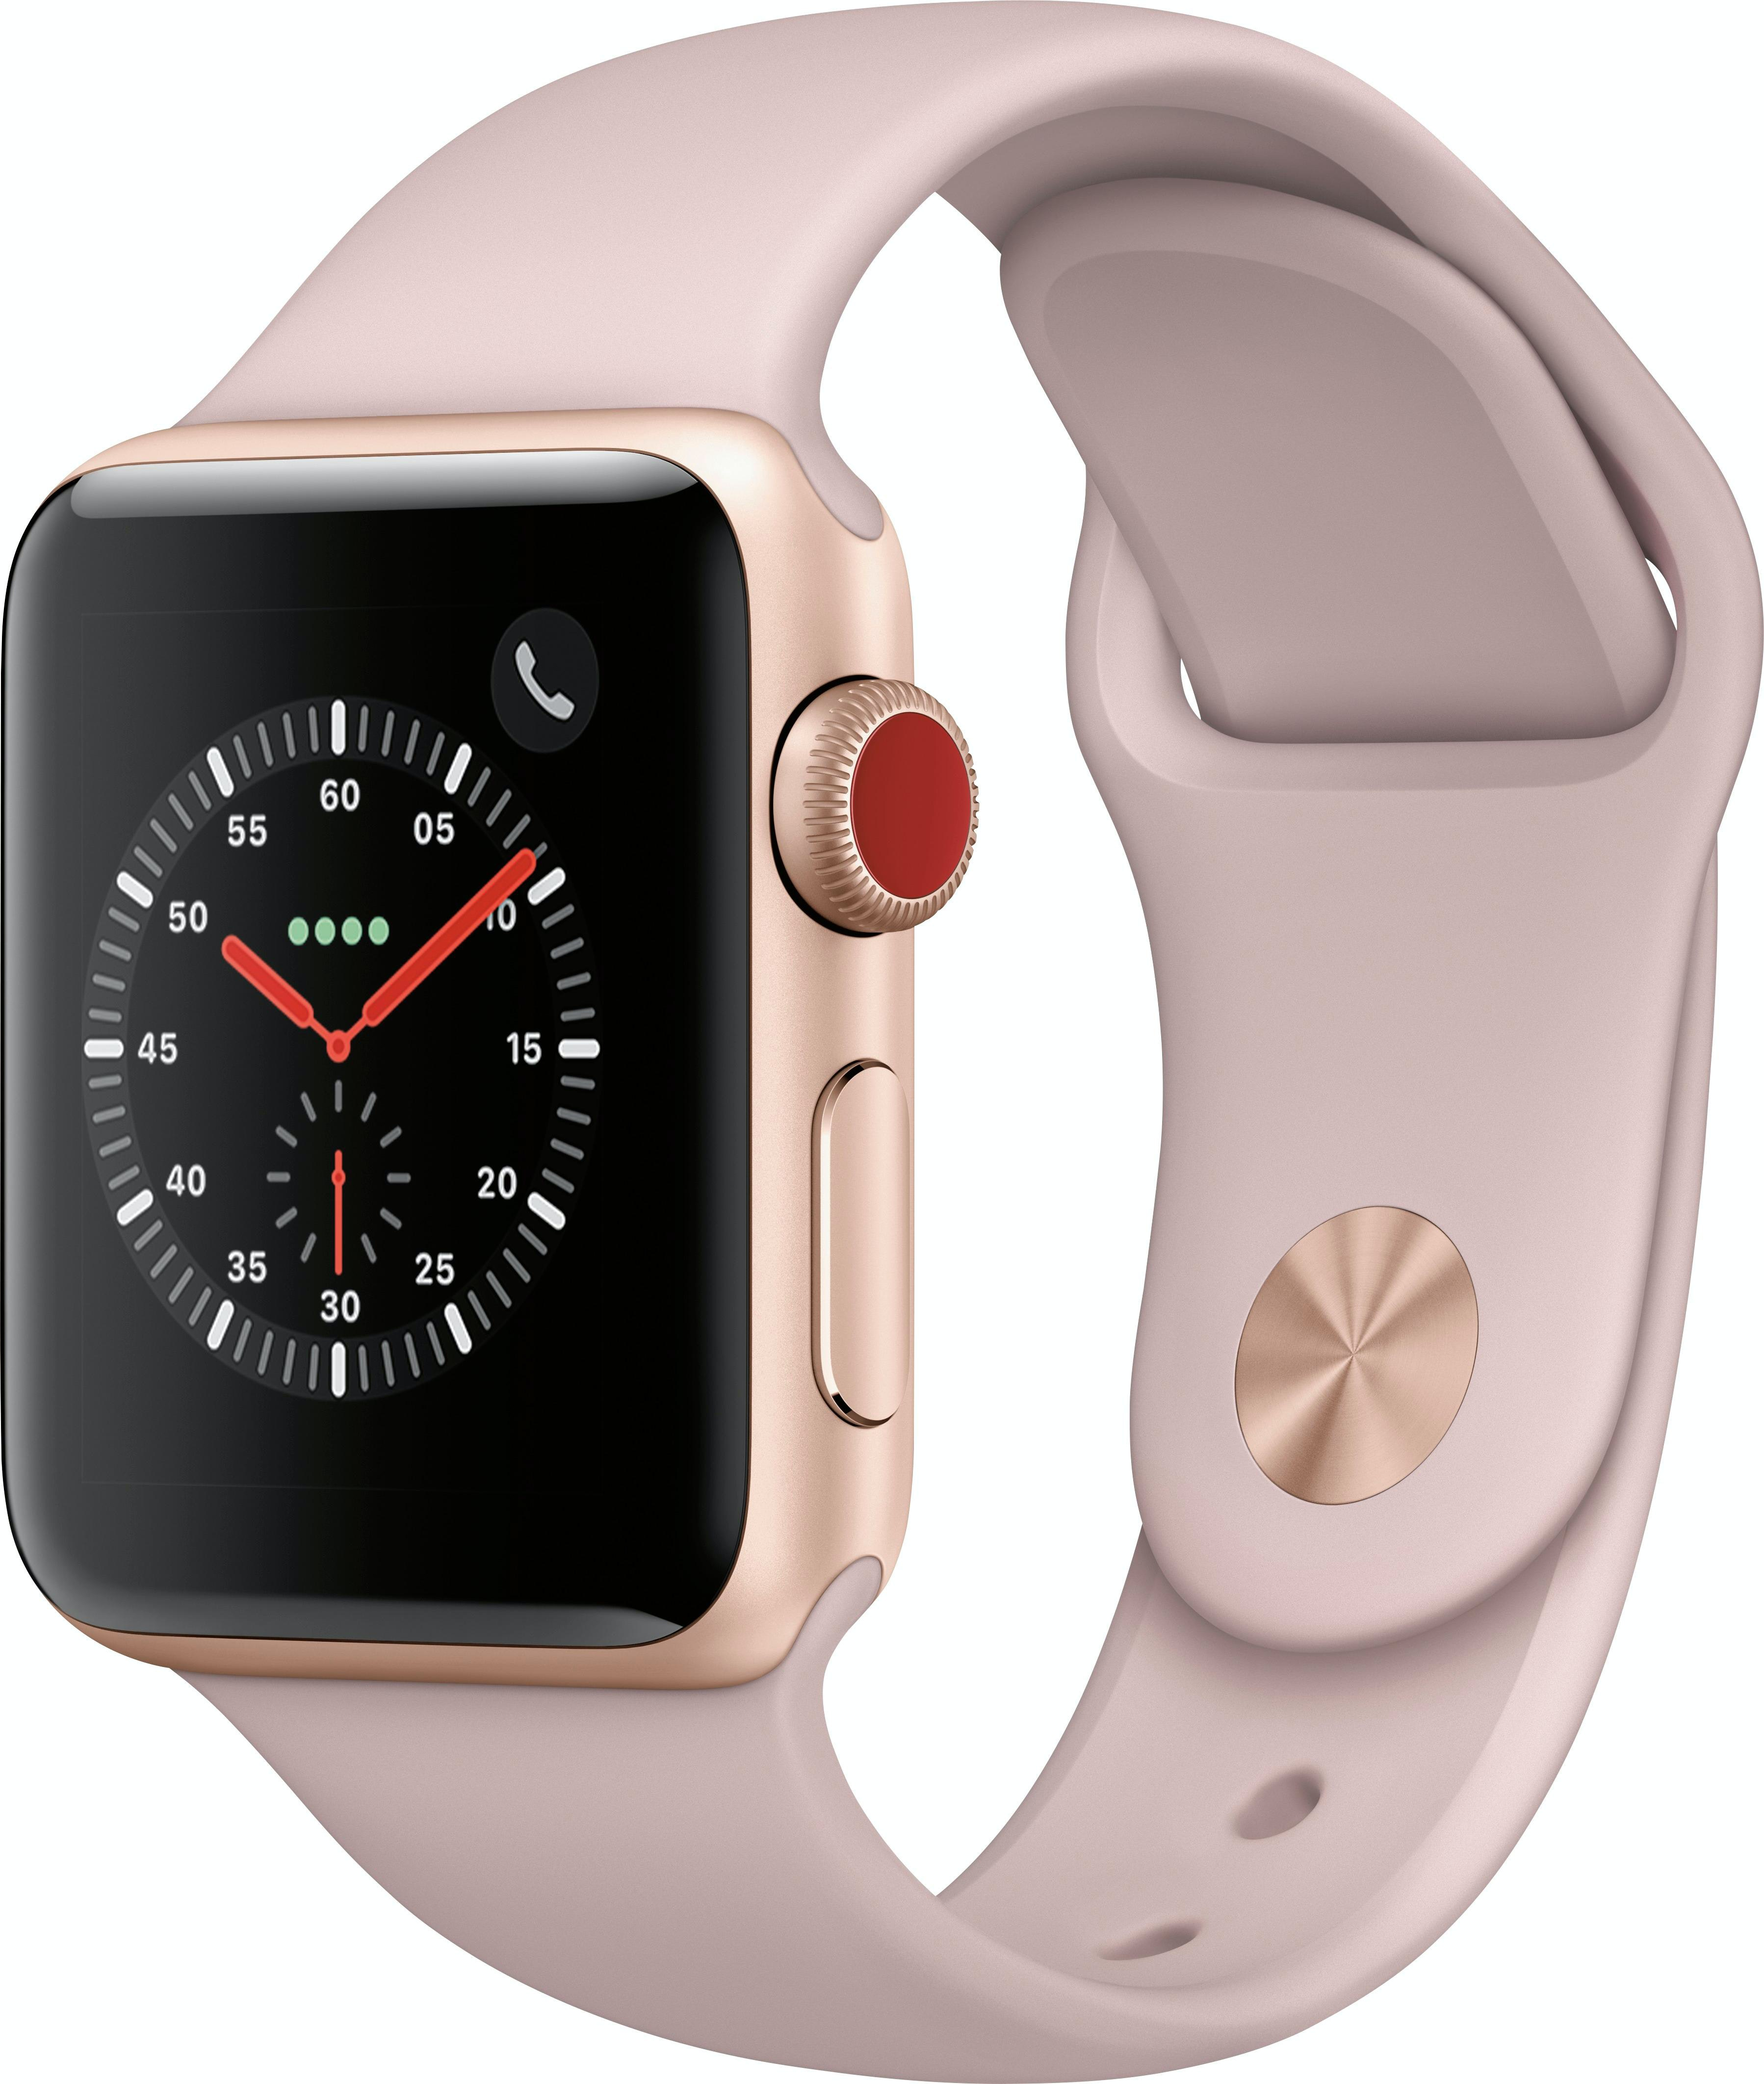 Apple Watch Series 3 GPS + Cellular 38mm Gold Aluminum Case with Pink Sand Sport Band A1860